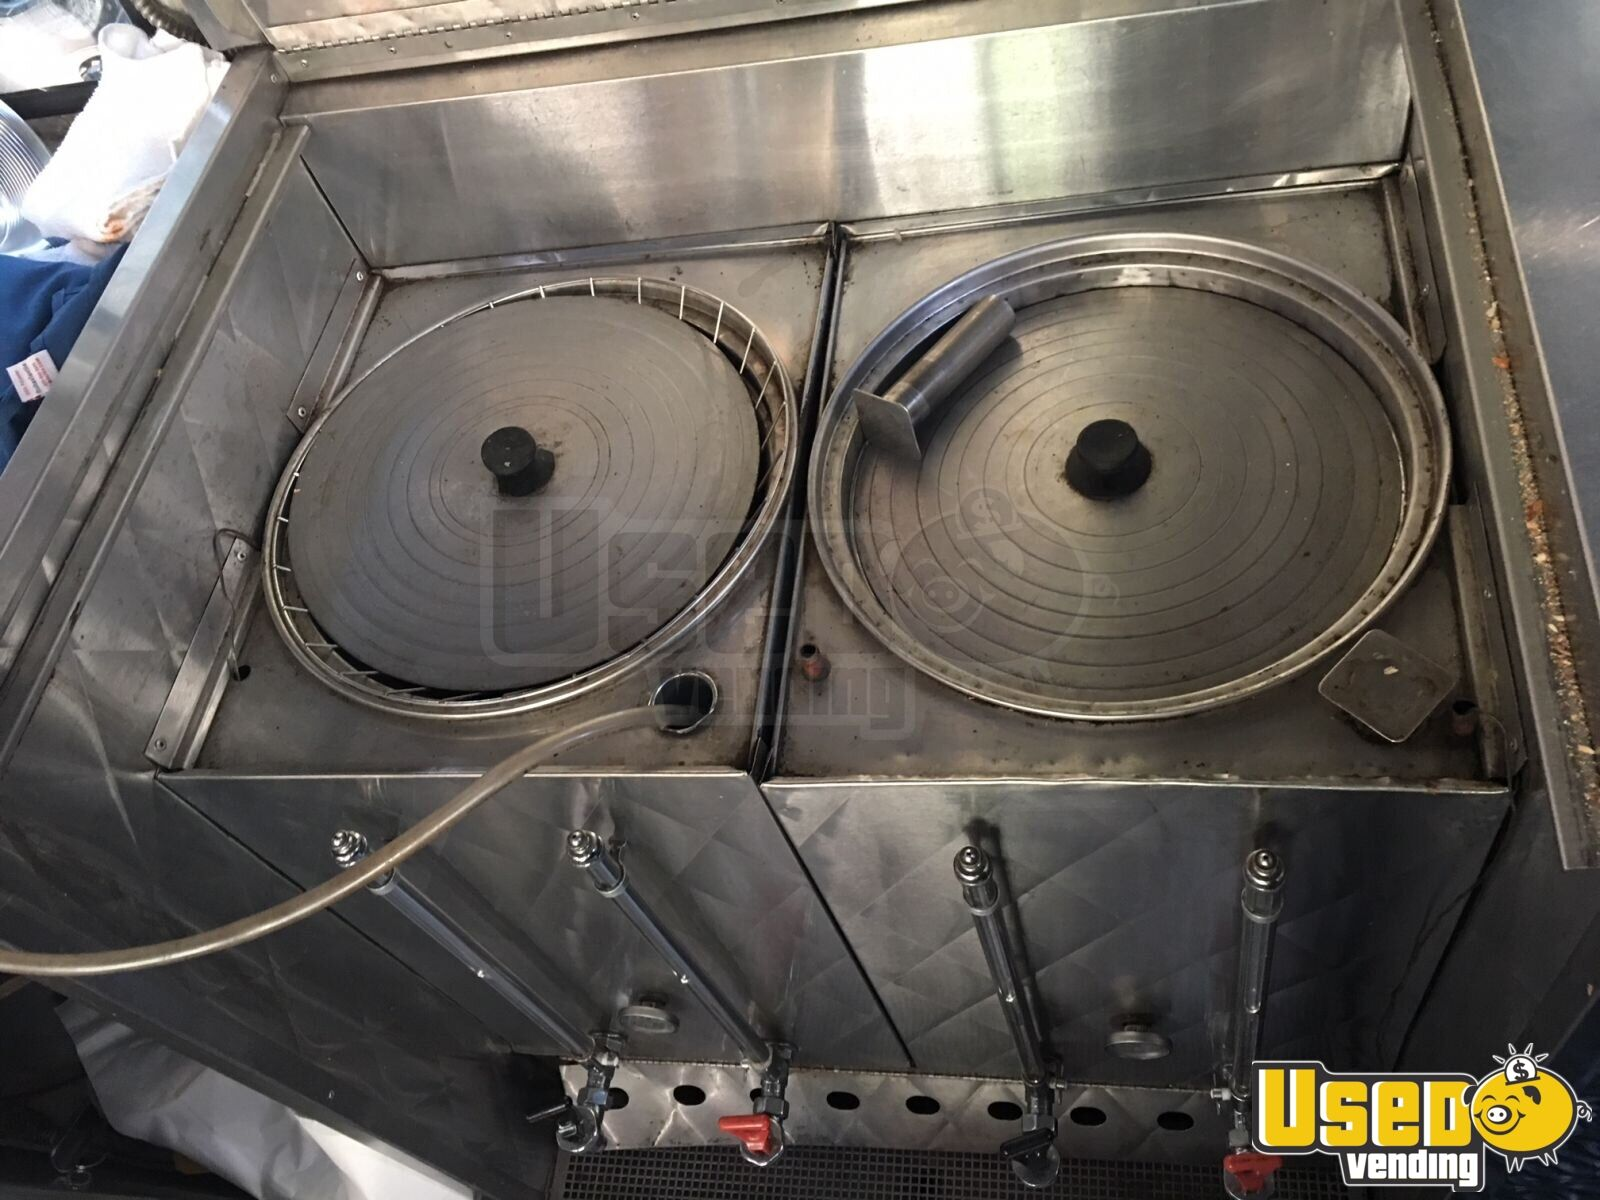 1999 Gmc 1900 All-purpose Food Truck Exhaust Fan Connecticut Gas Engine for Sale - 22